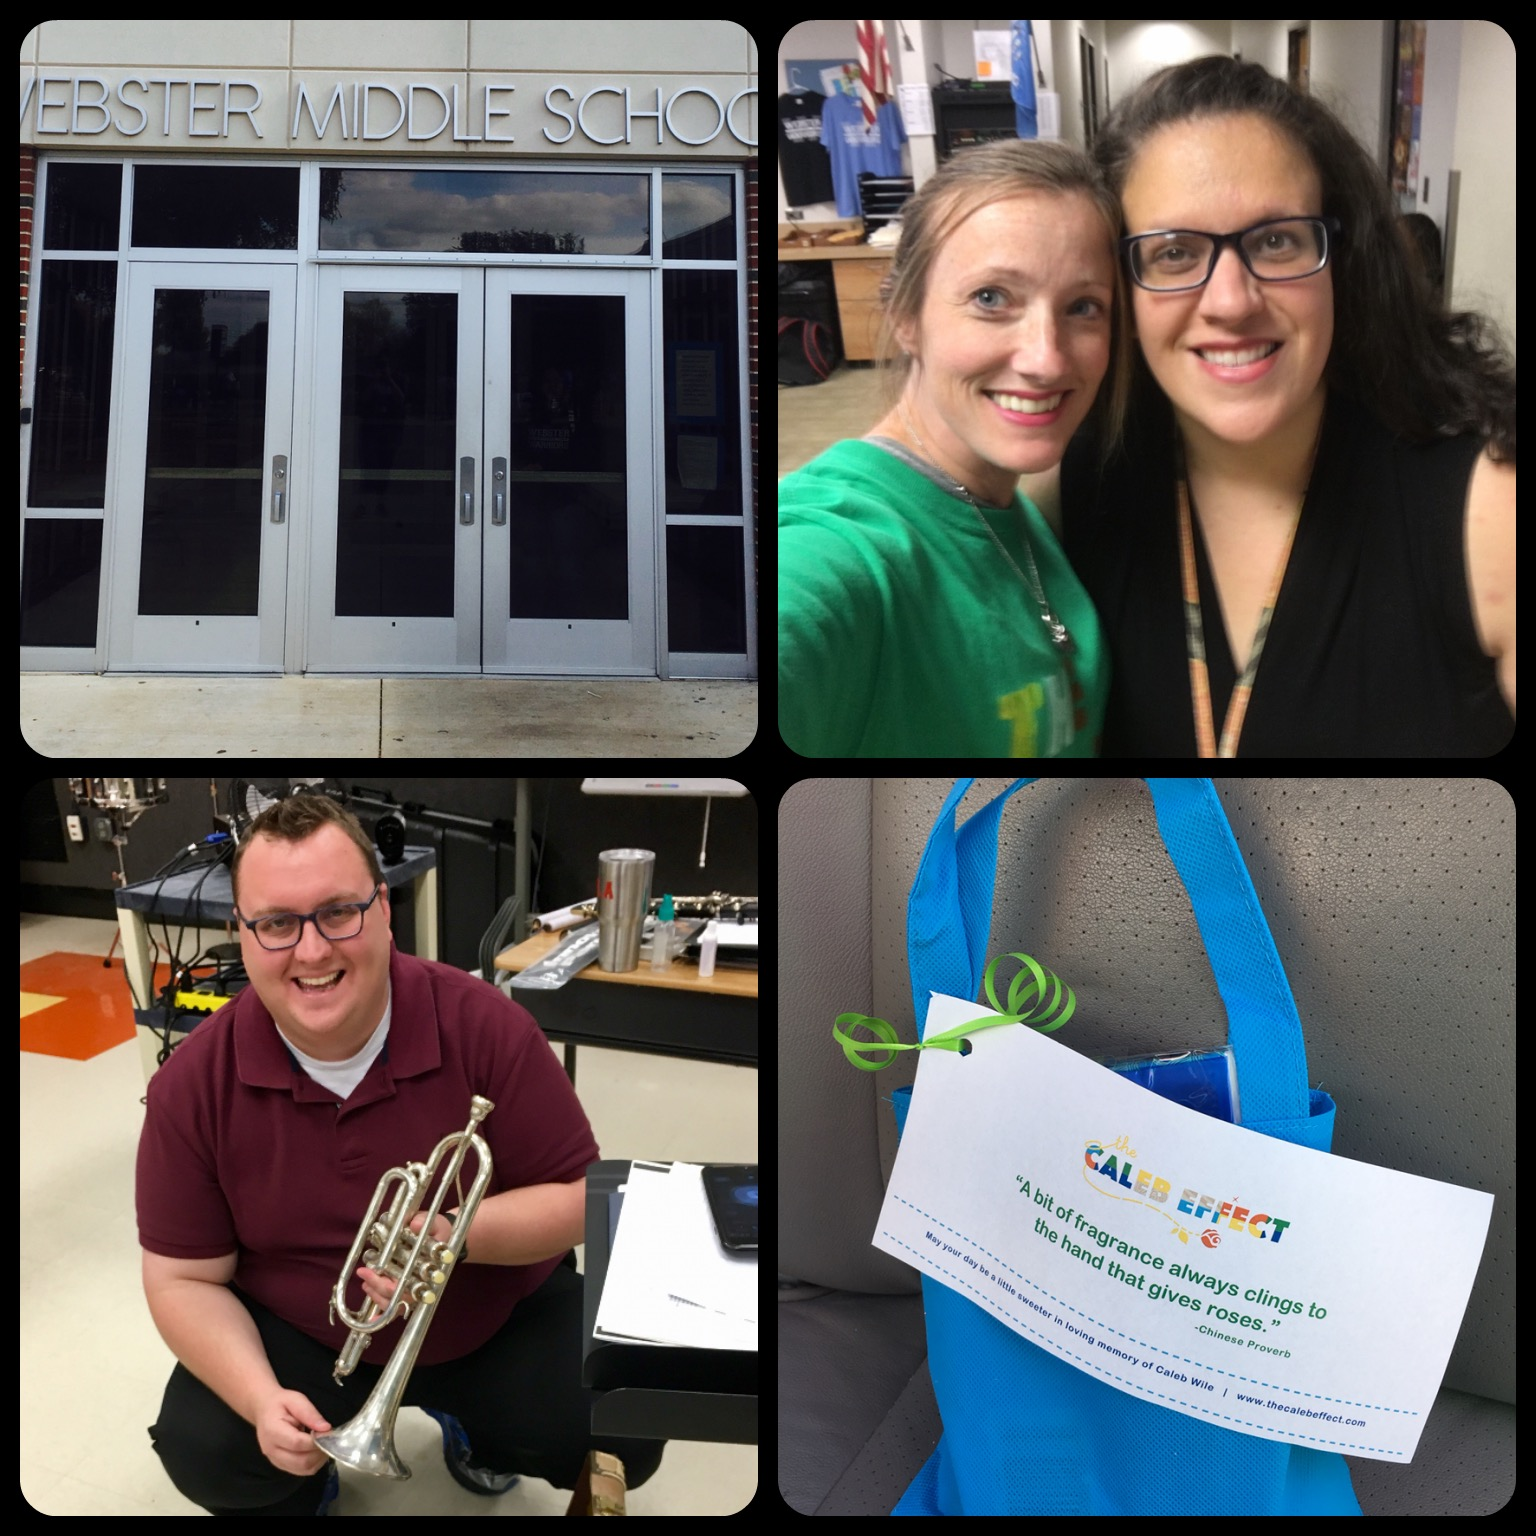 Dropped off a trumpet that was graciously donated by someone from the Piedmont Facebook marketplace. Mr. Annesley also got a few goodies to help him weather the band's outdoor performances and a gift card to help purchase sheet music.   Webster also gets bonus points as I got to hug  Sarah Odusi , their sweet school counselor! — with  Jon Annesley  and  Sarah Odusi  at  Webster Middle School .